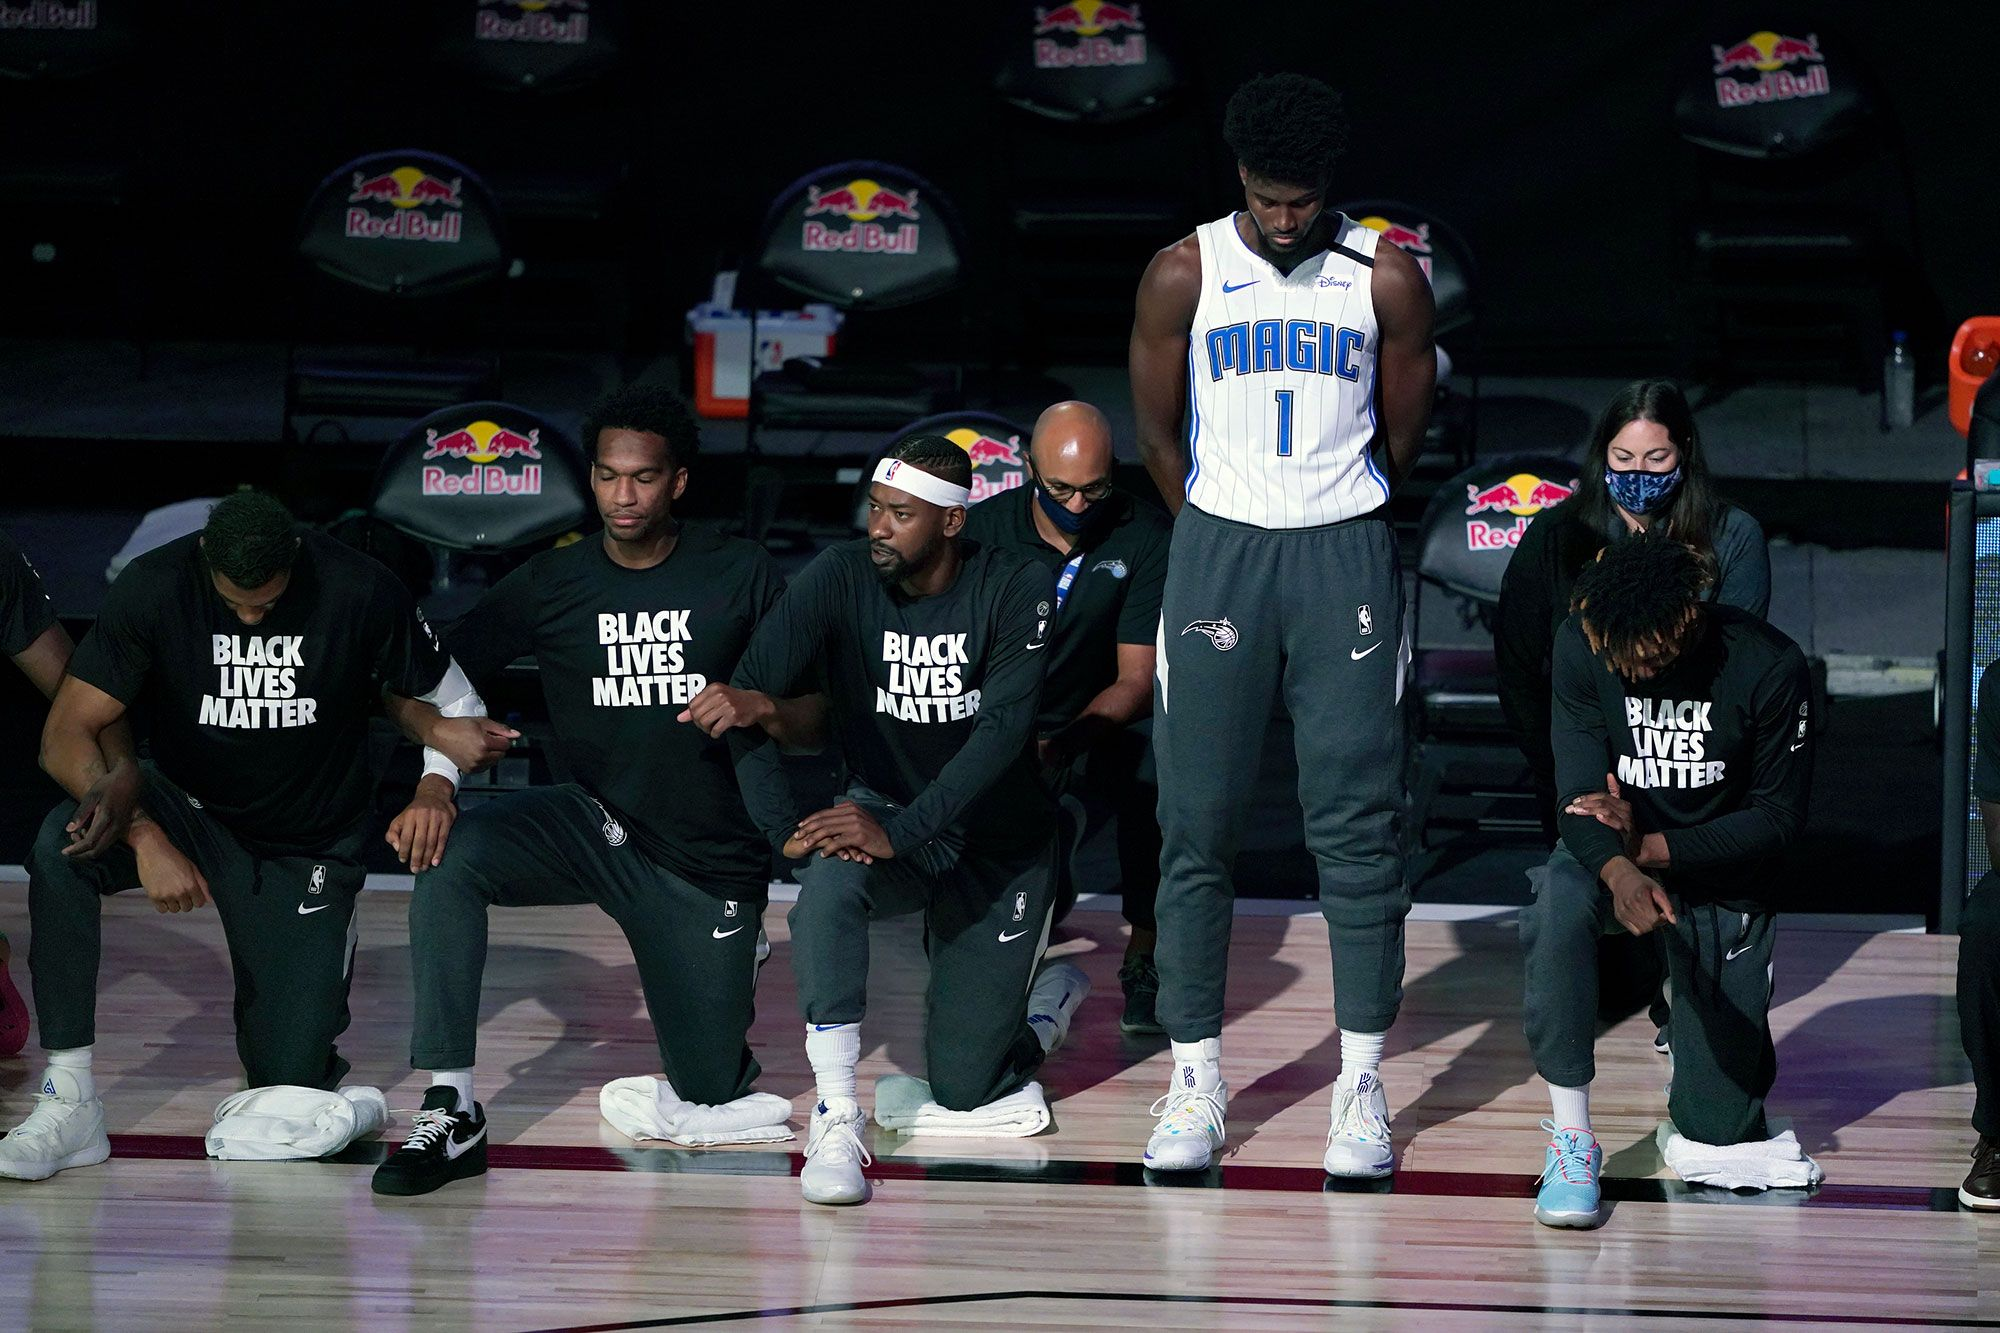 NBA Star Explains Why He Didn't Kneel and Wear Black Lives Matter Shirt During National Anthem ...